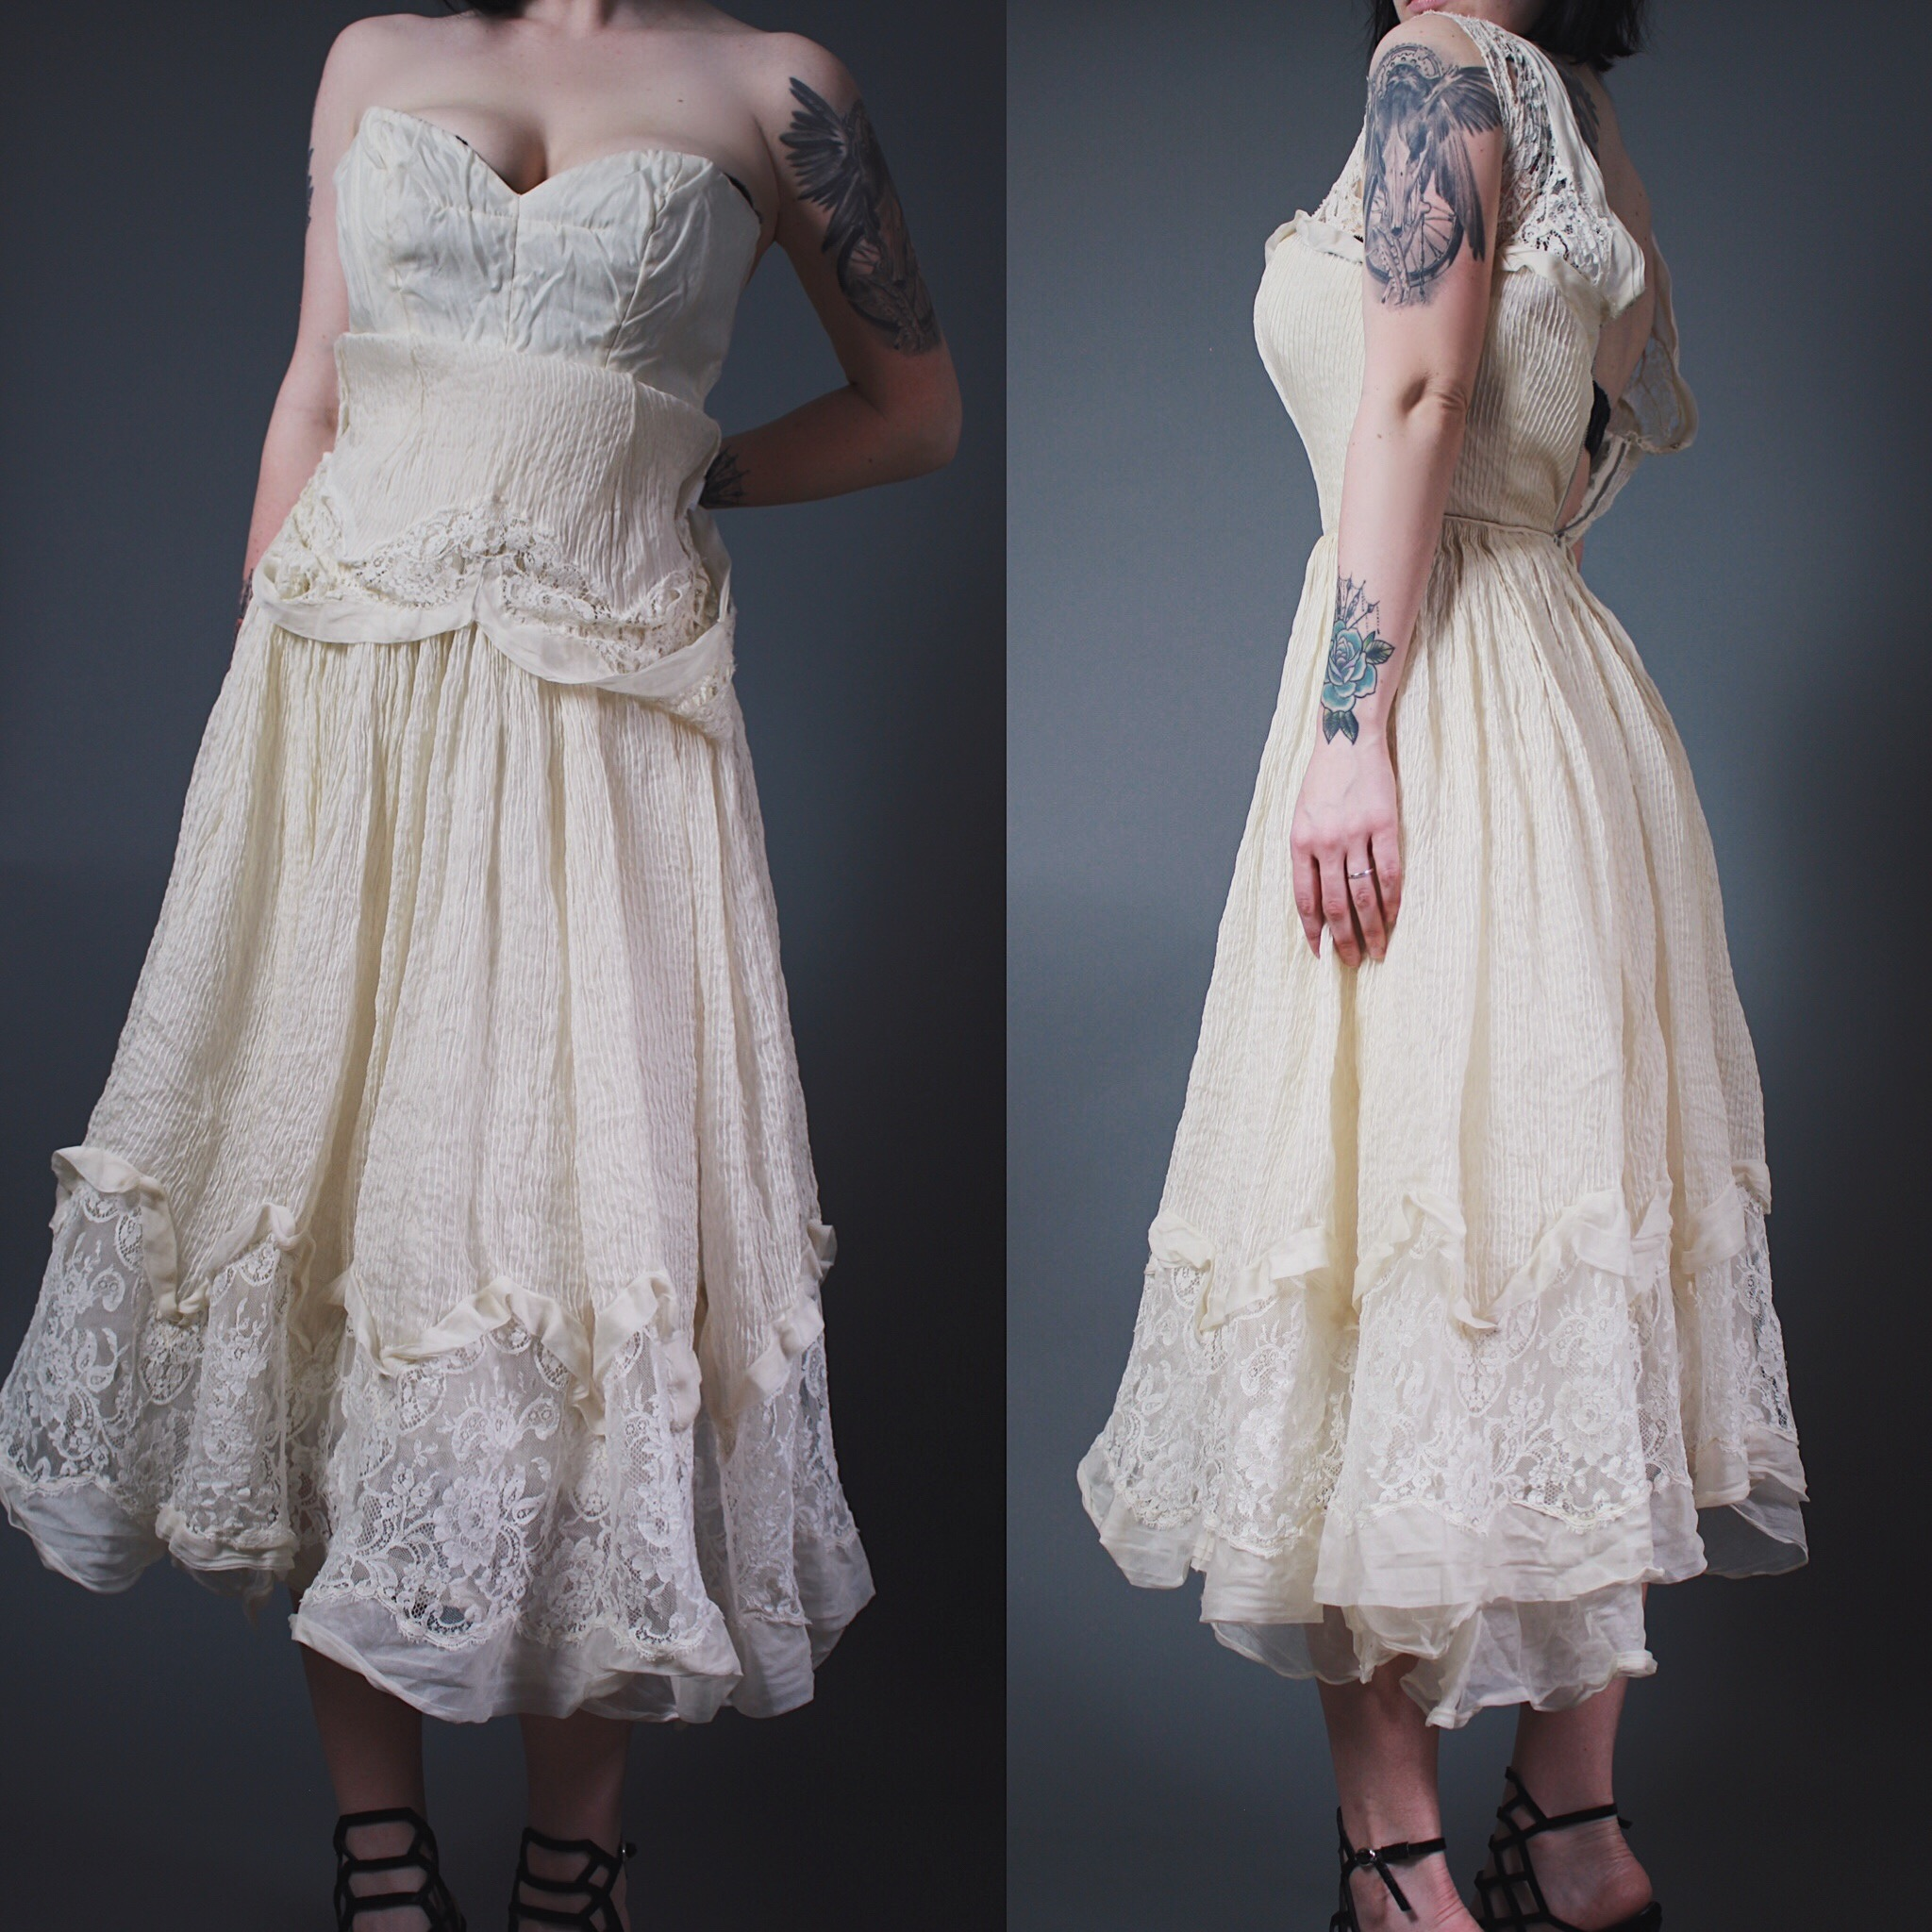 CLAIMED @vamps420 - Vintage 1950s Layered Lace Steampunk Wedding ...